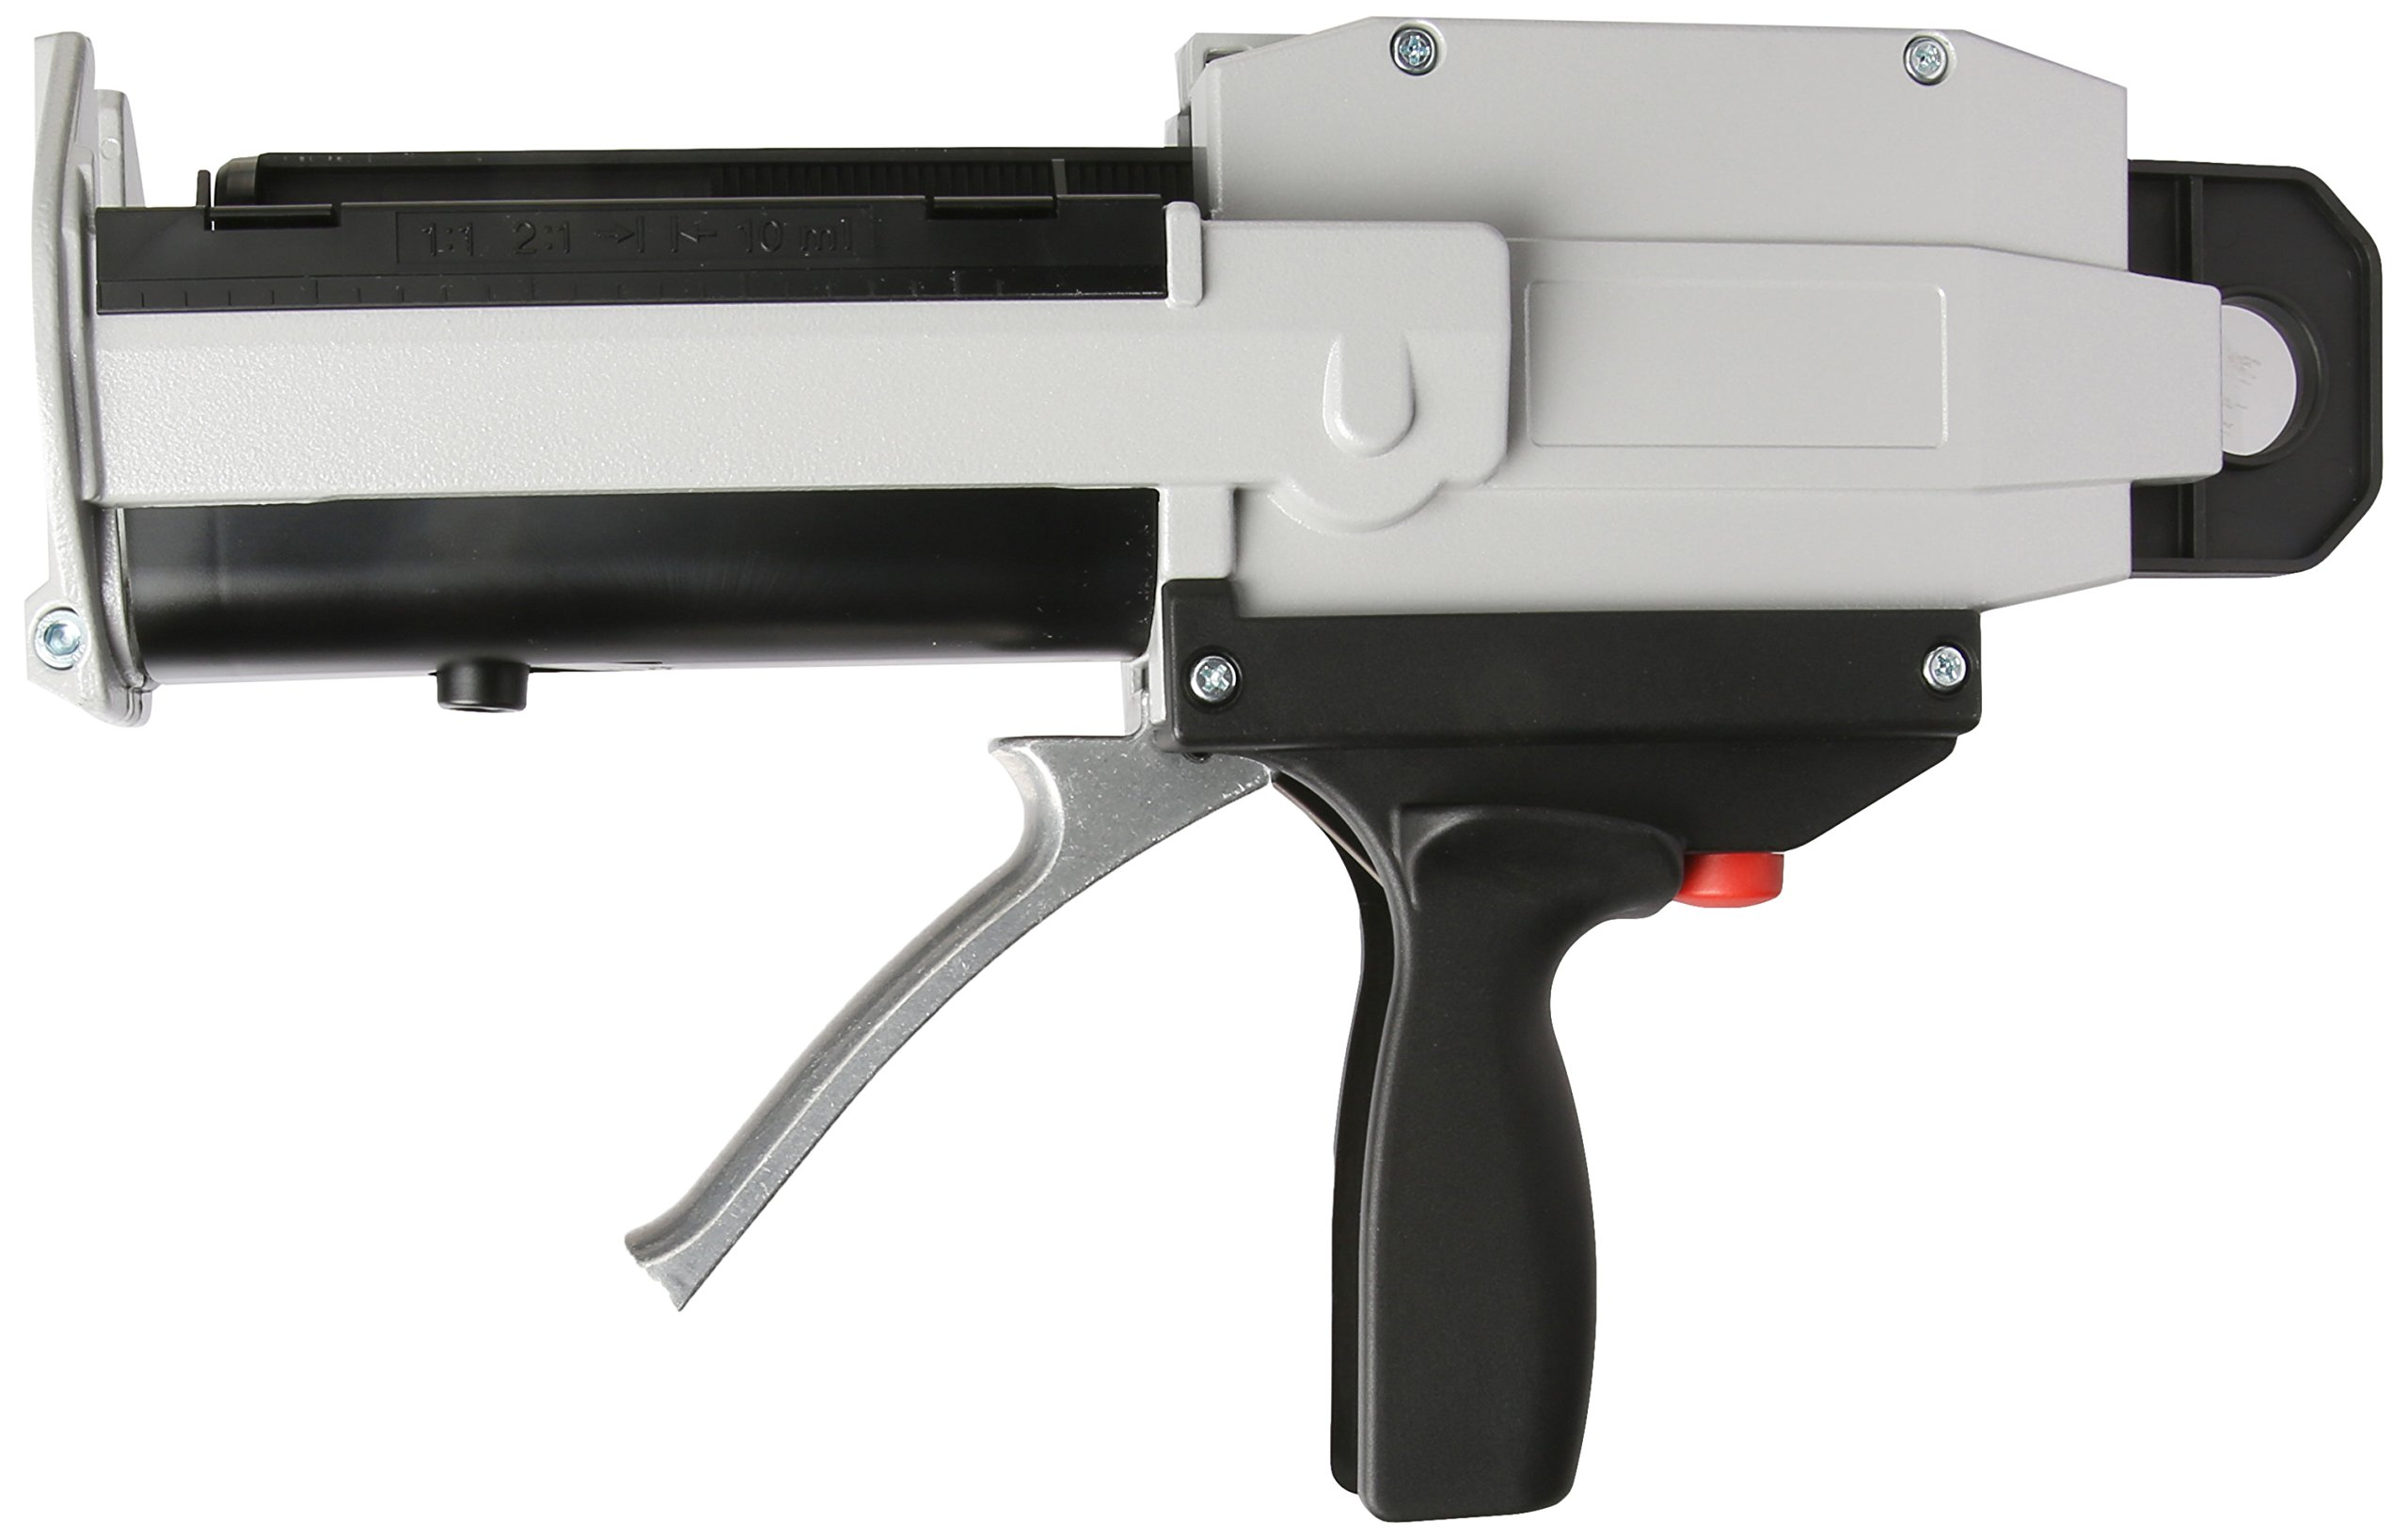 3M 08117 MixPac Applicator Gun for 200 ml Cartridges